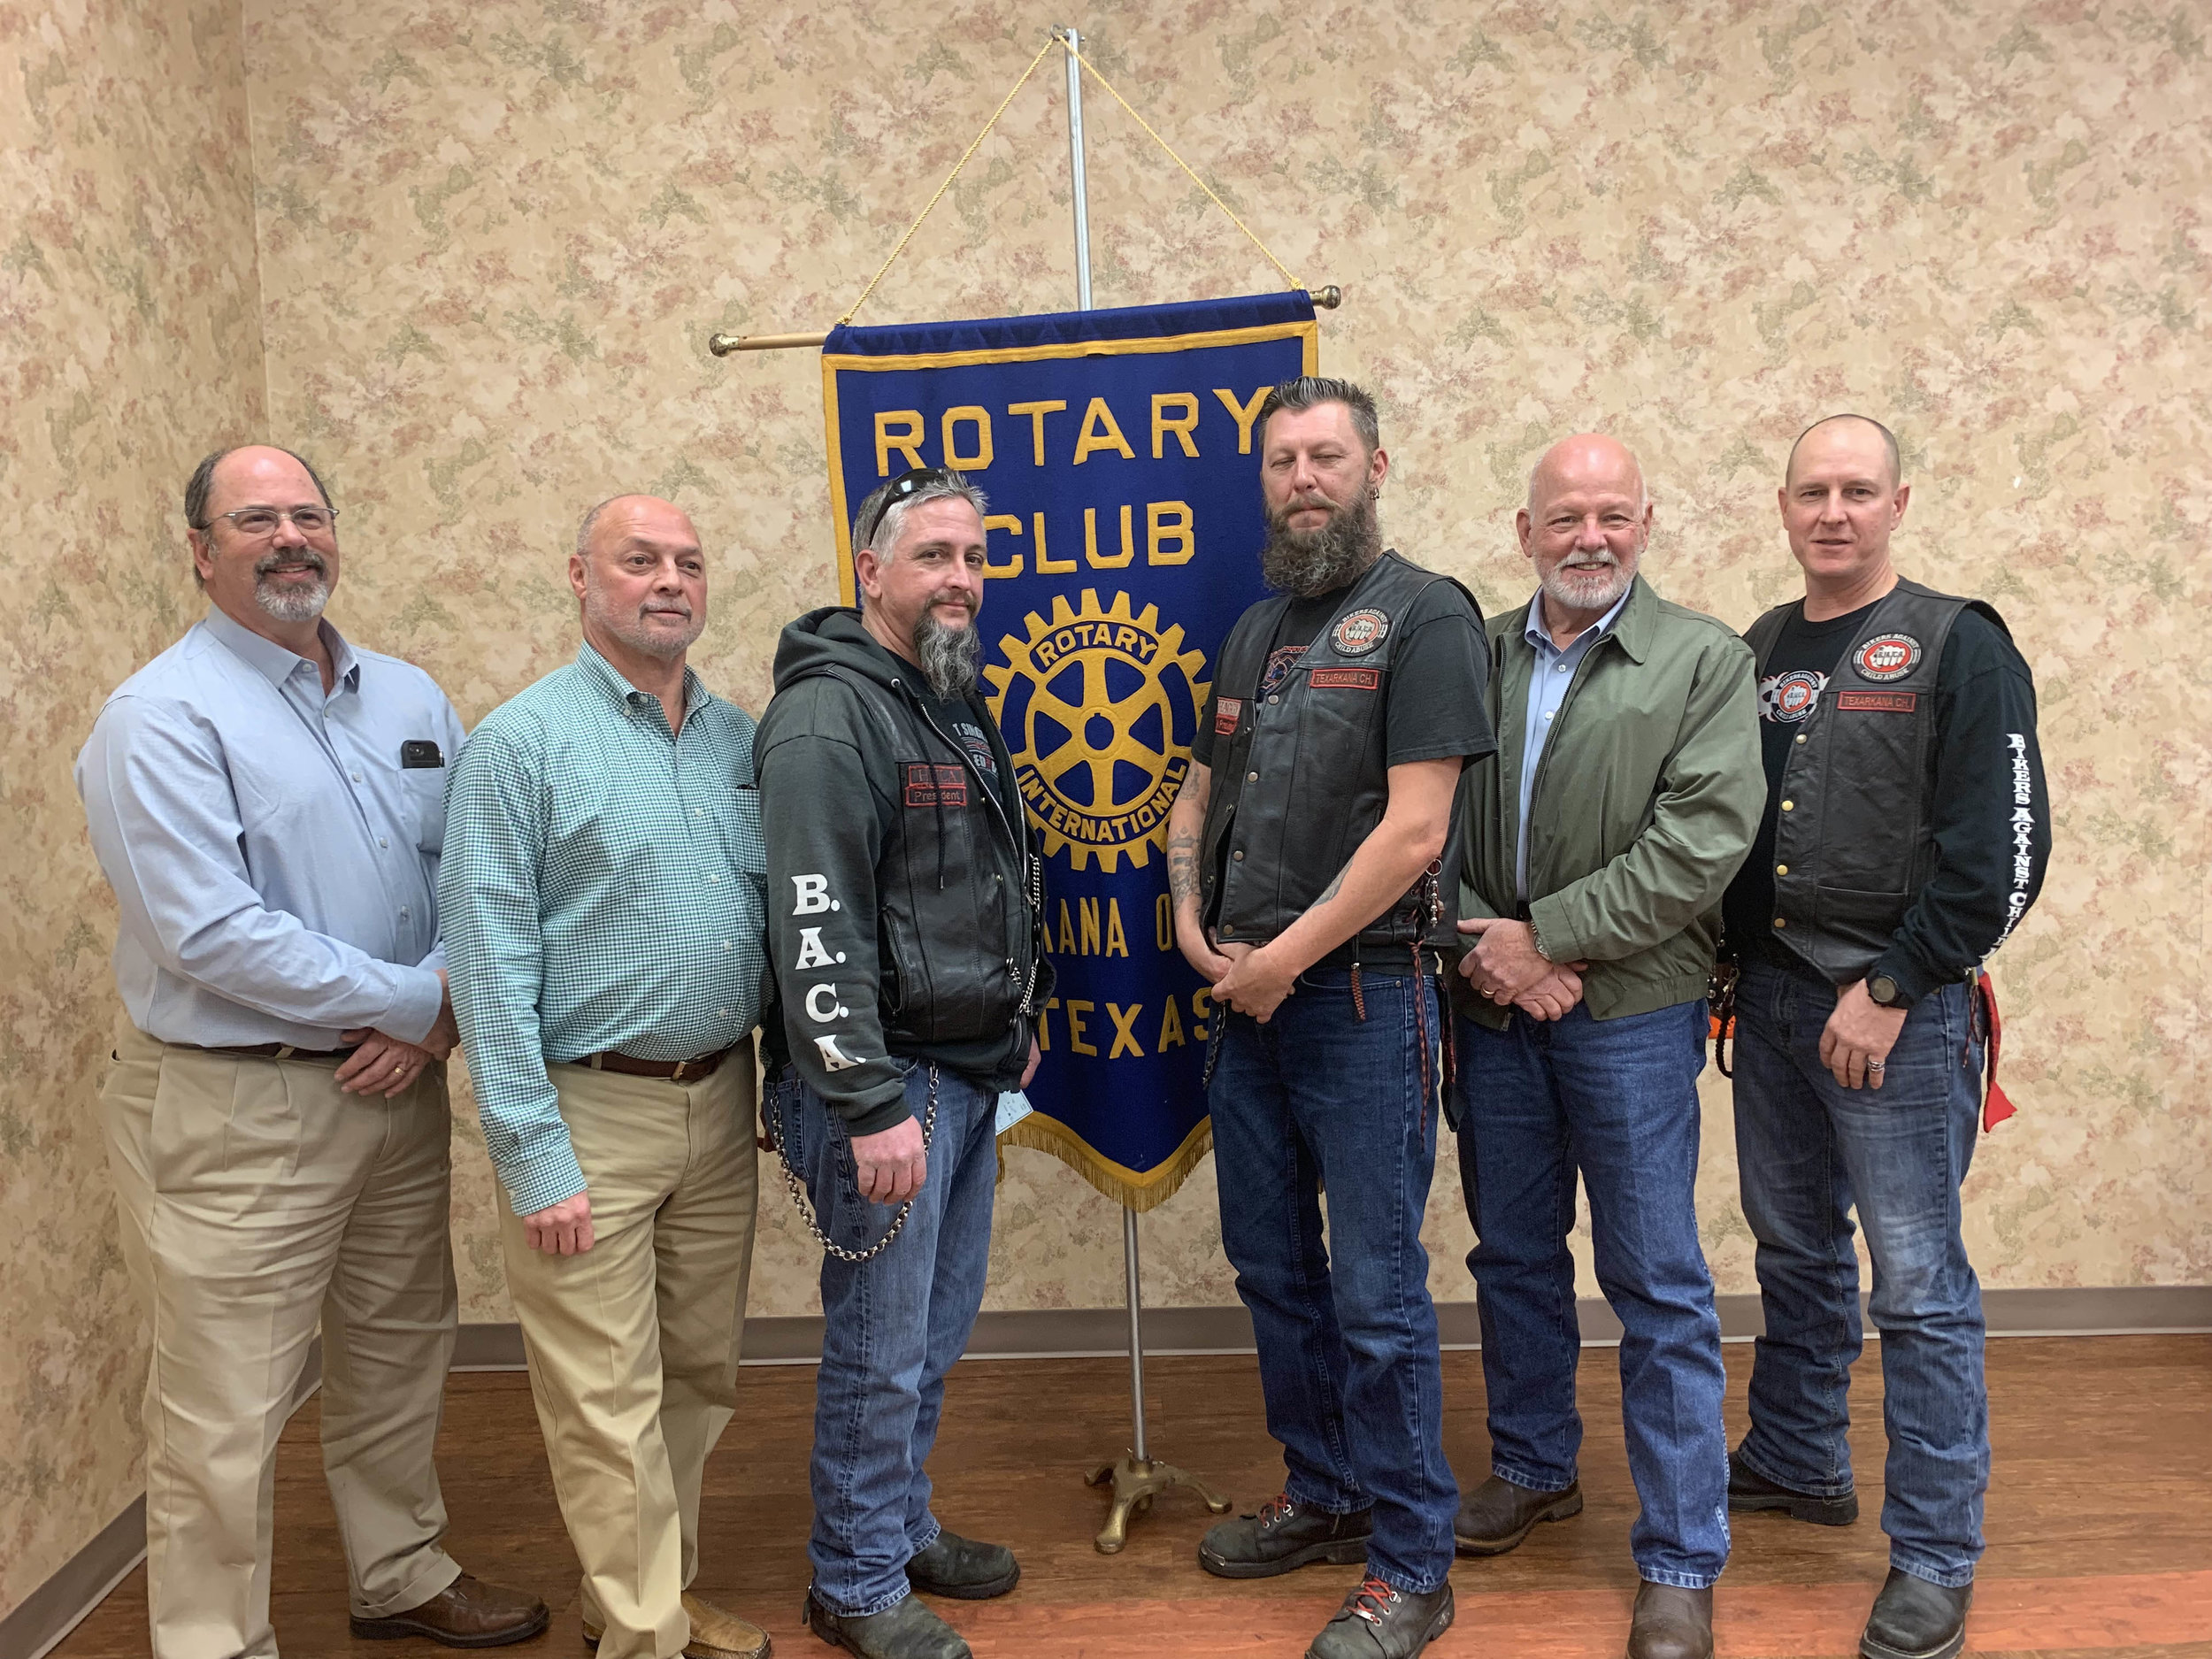 Bikers Against Child Abuse (BACA): Dr. Jim Moser, Mark Luckett, Dan Bean, Gaylon Foster, Mike Richardson and Karl Cardwell